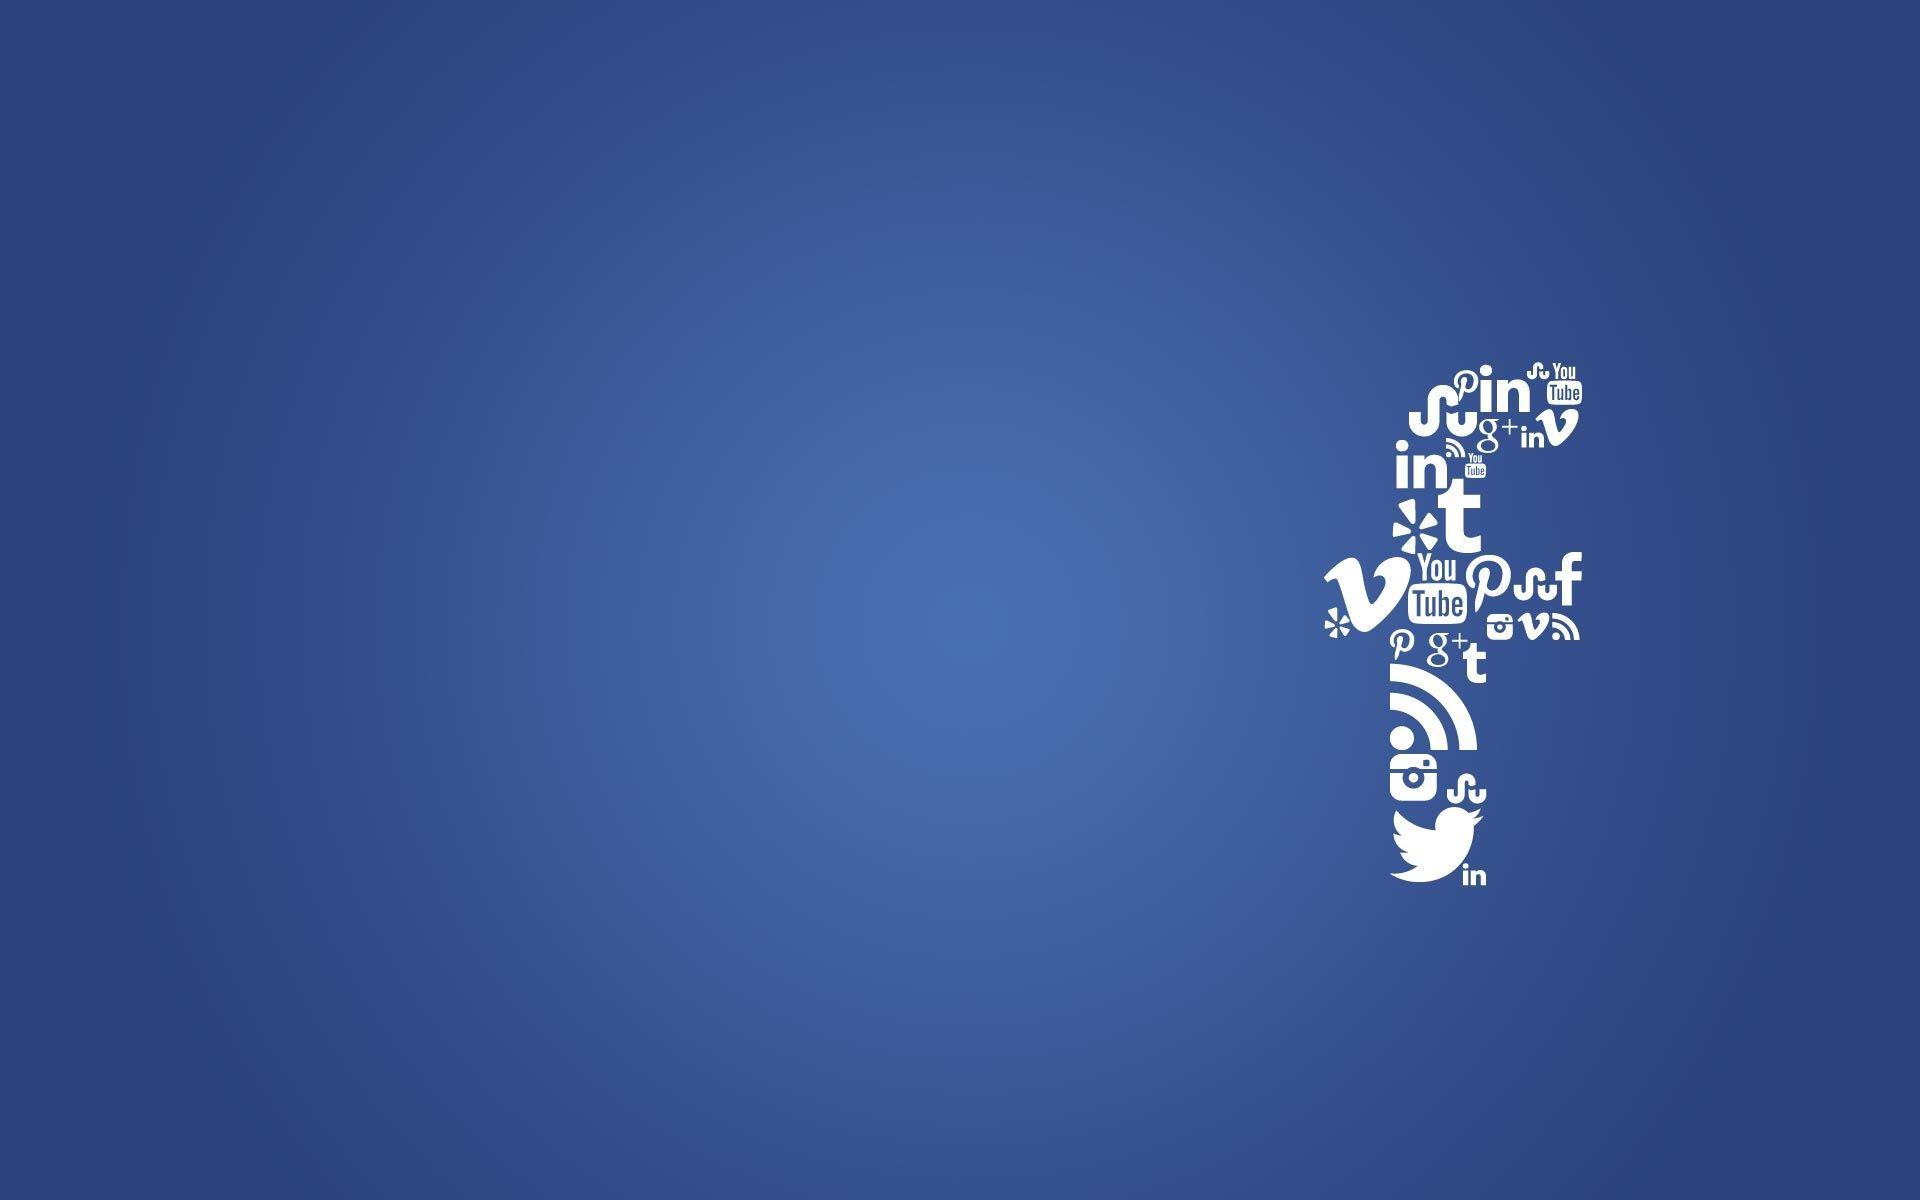 Facebook wallpapers wallpapers for free download about